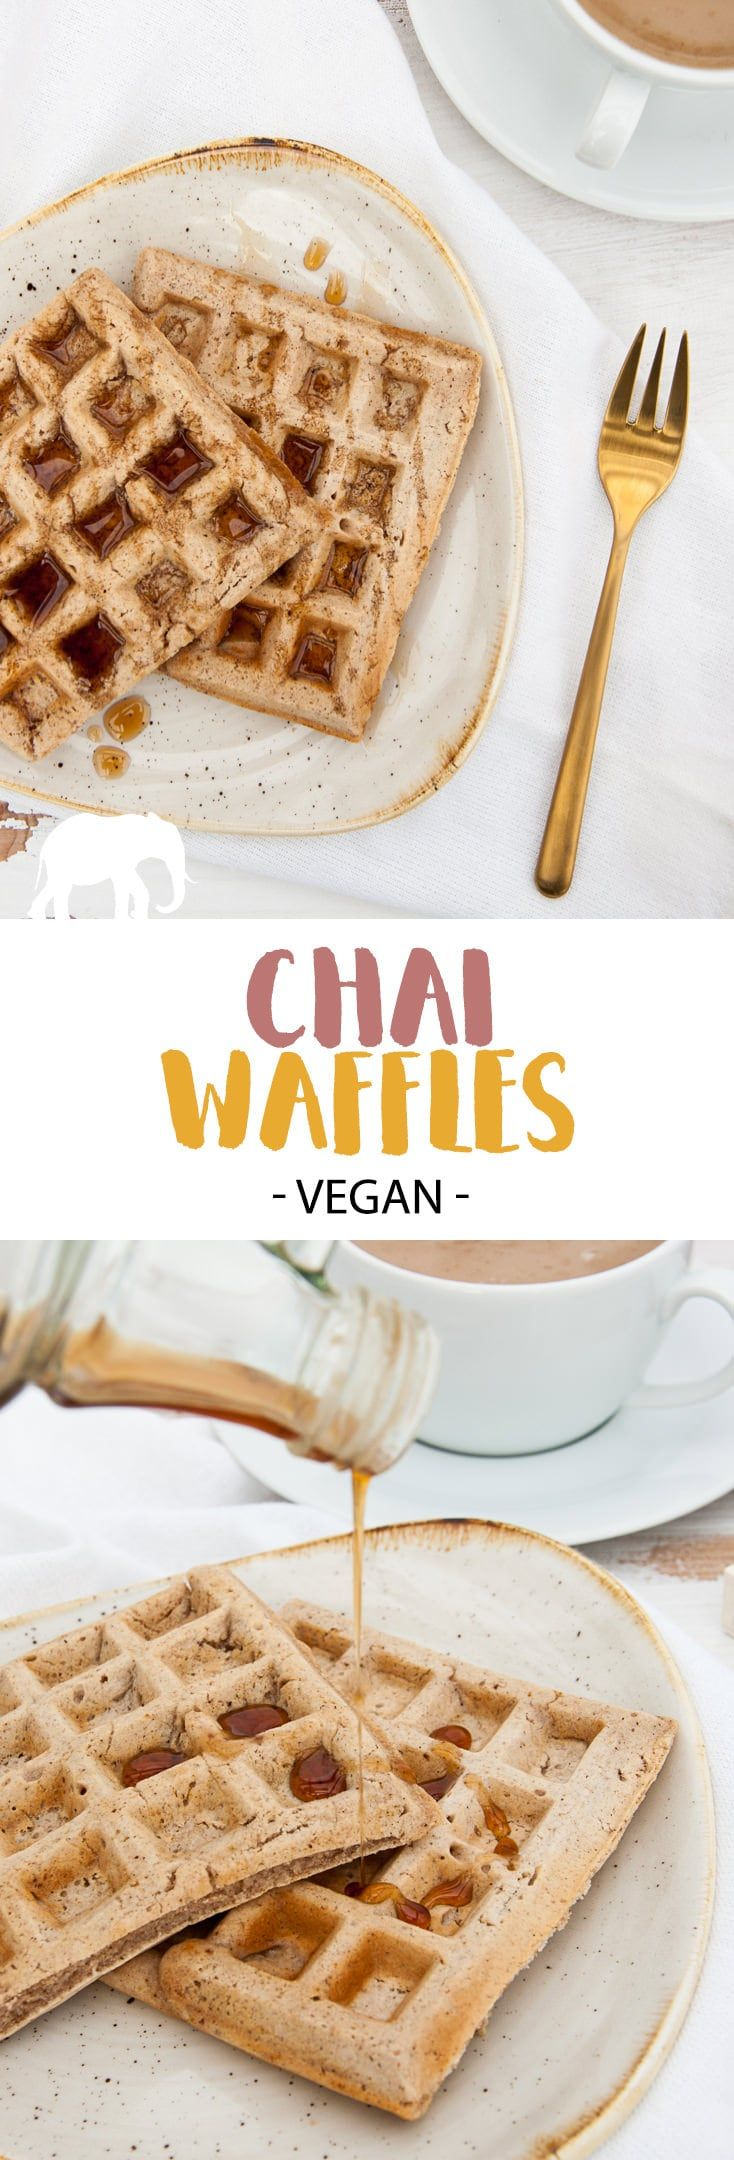 Vegan Chai Waffles via @elephantasticv